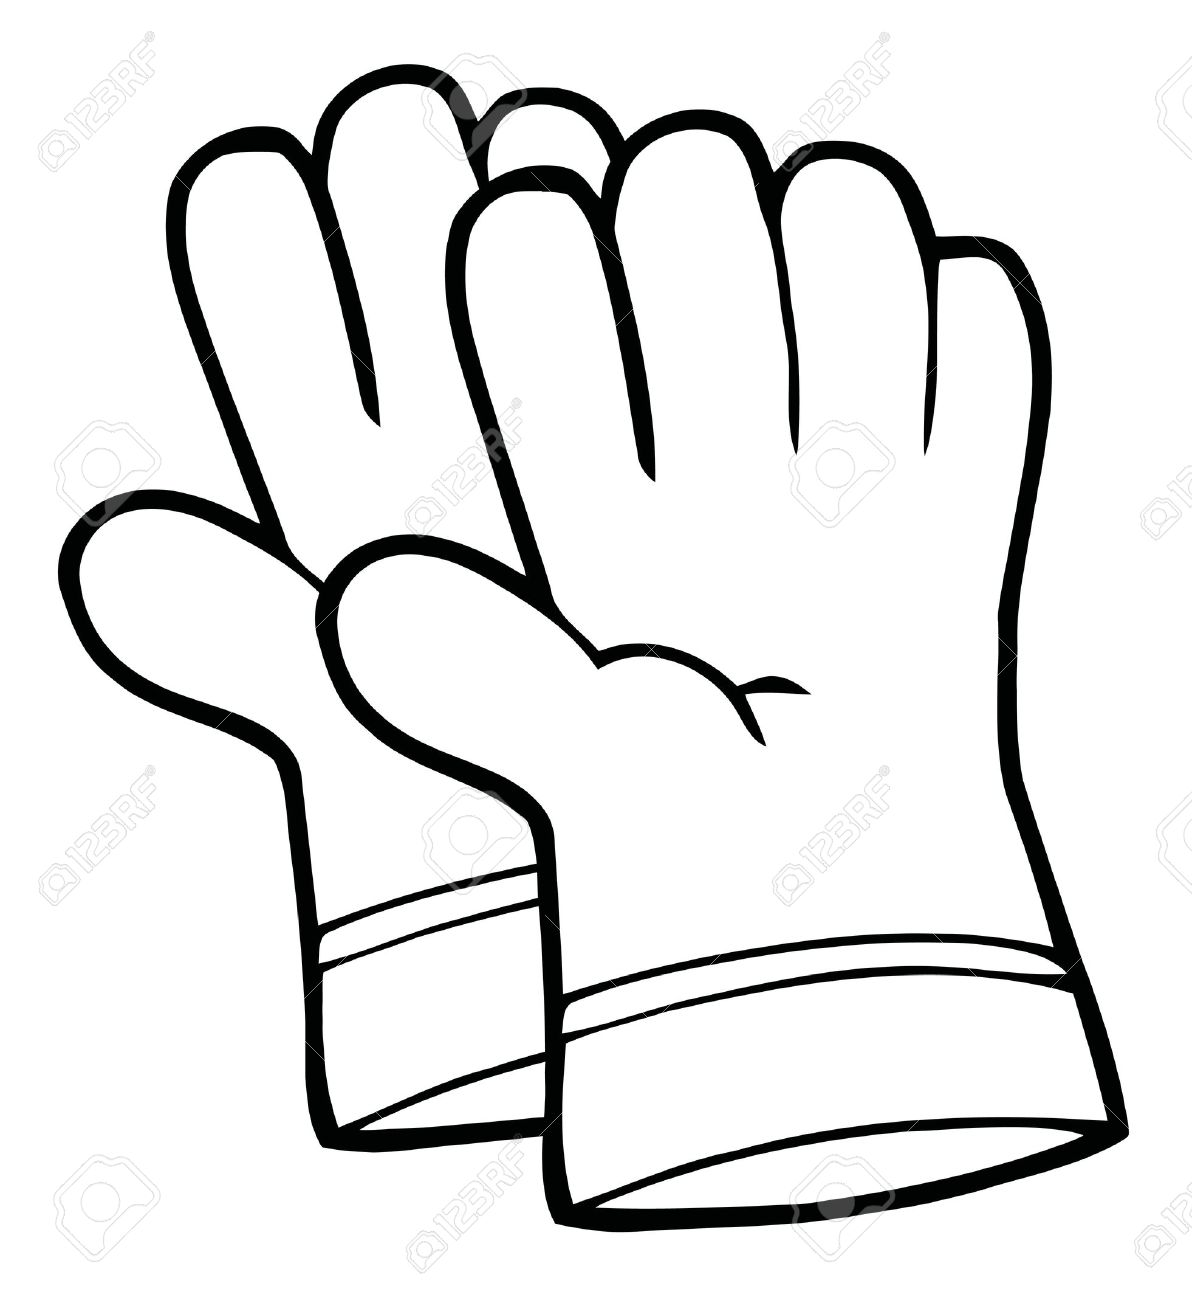 Coloring sheet hand - Coloring Page Outline Of A Pair Of Gardening Hand Gloves Stock Vector 7849213